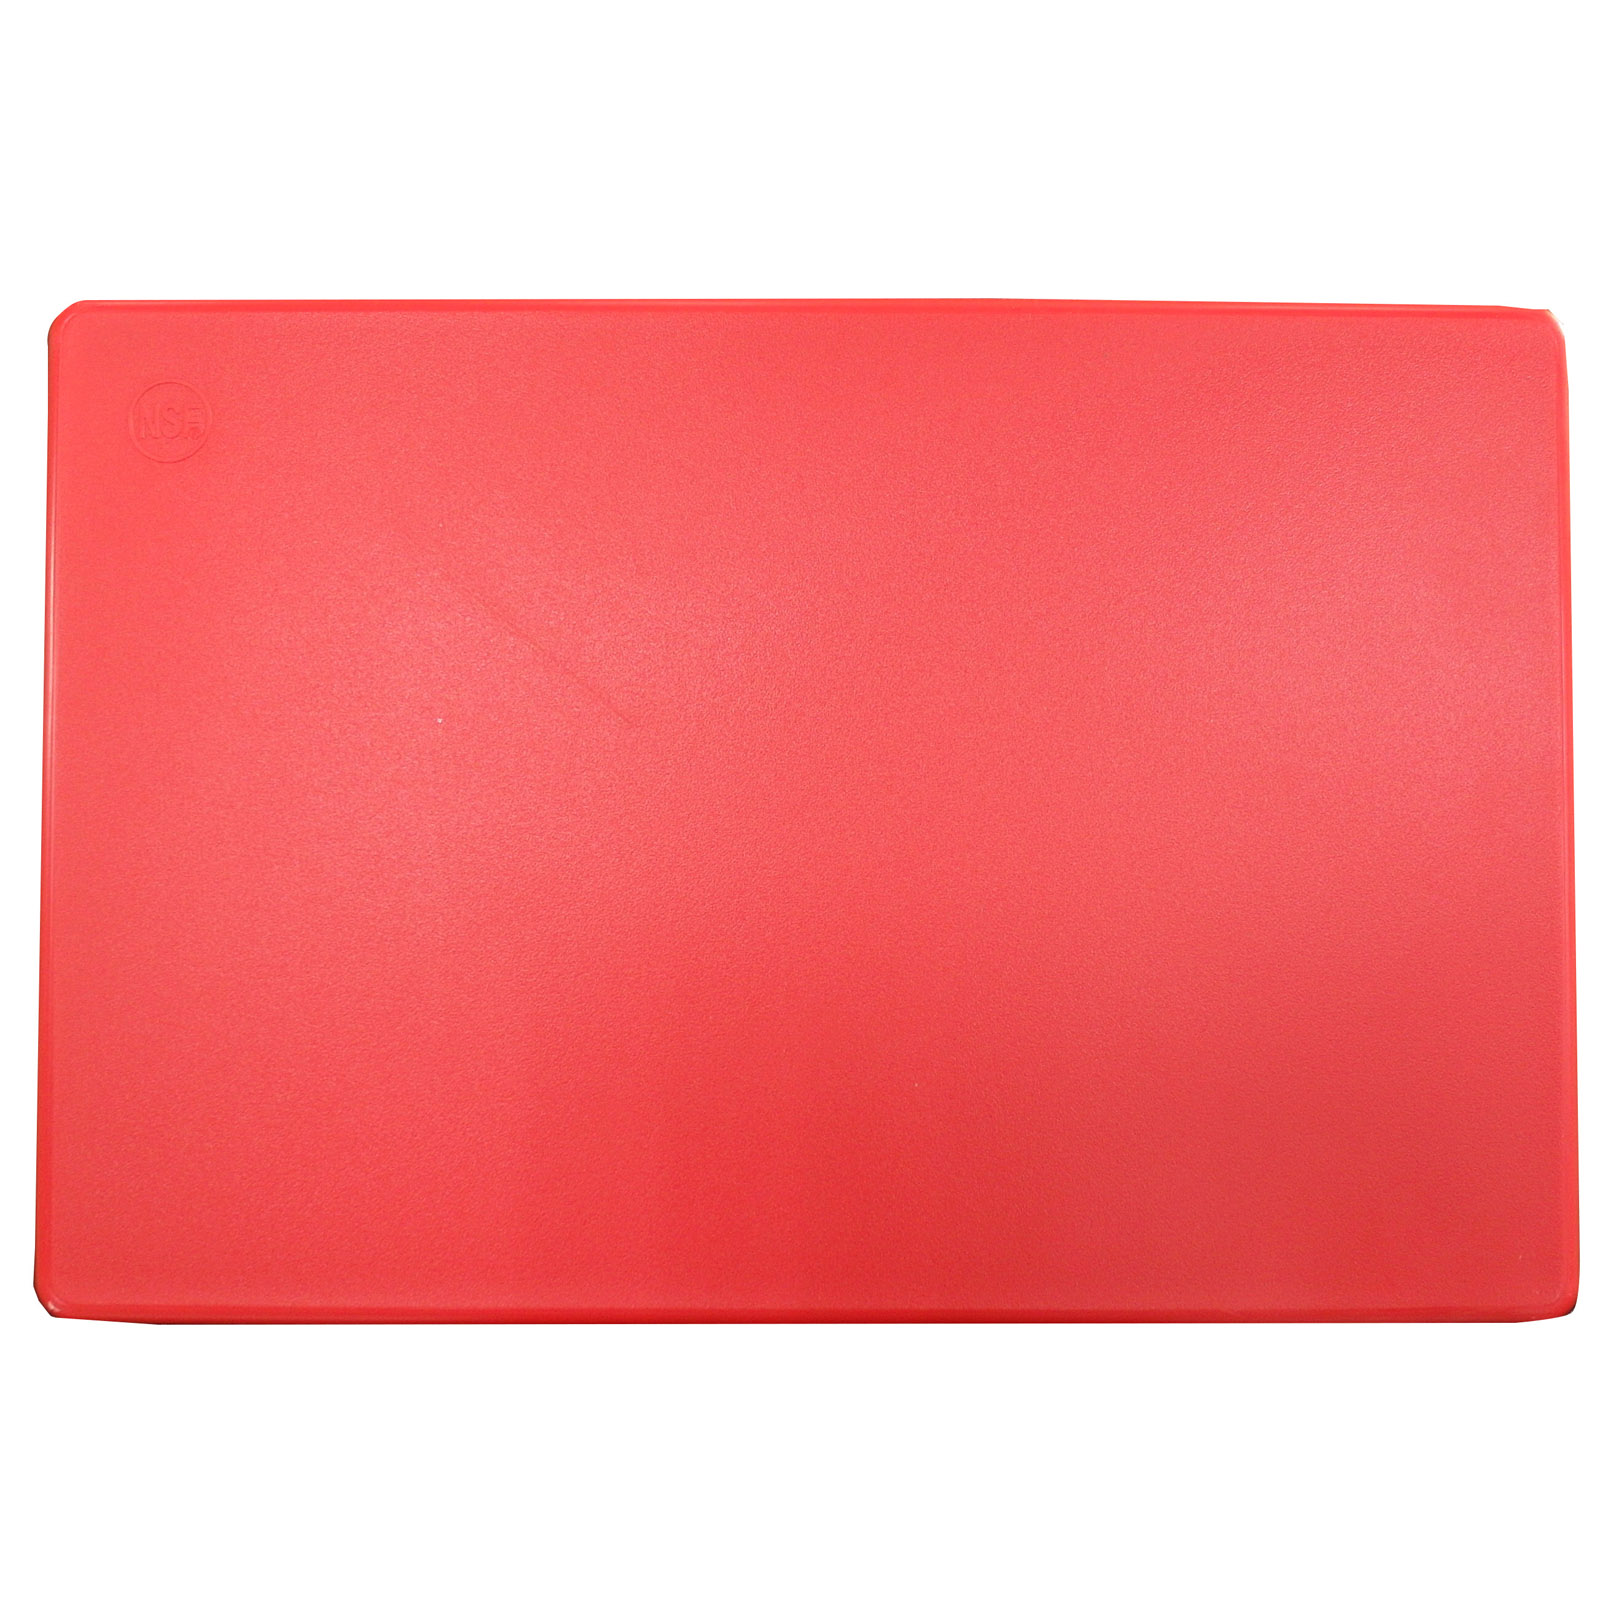 Admiral Craft HDCB-1824/RD cutting board, plastic